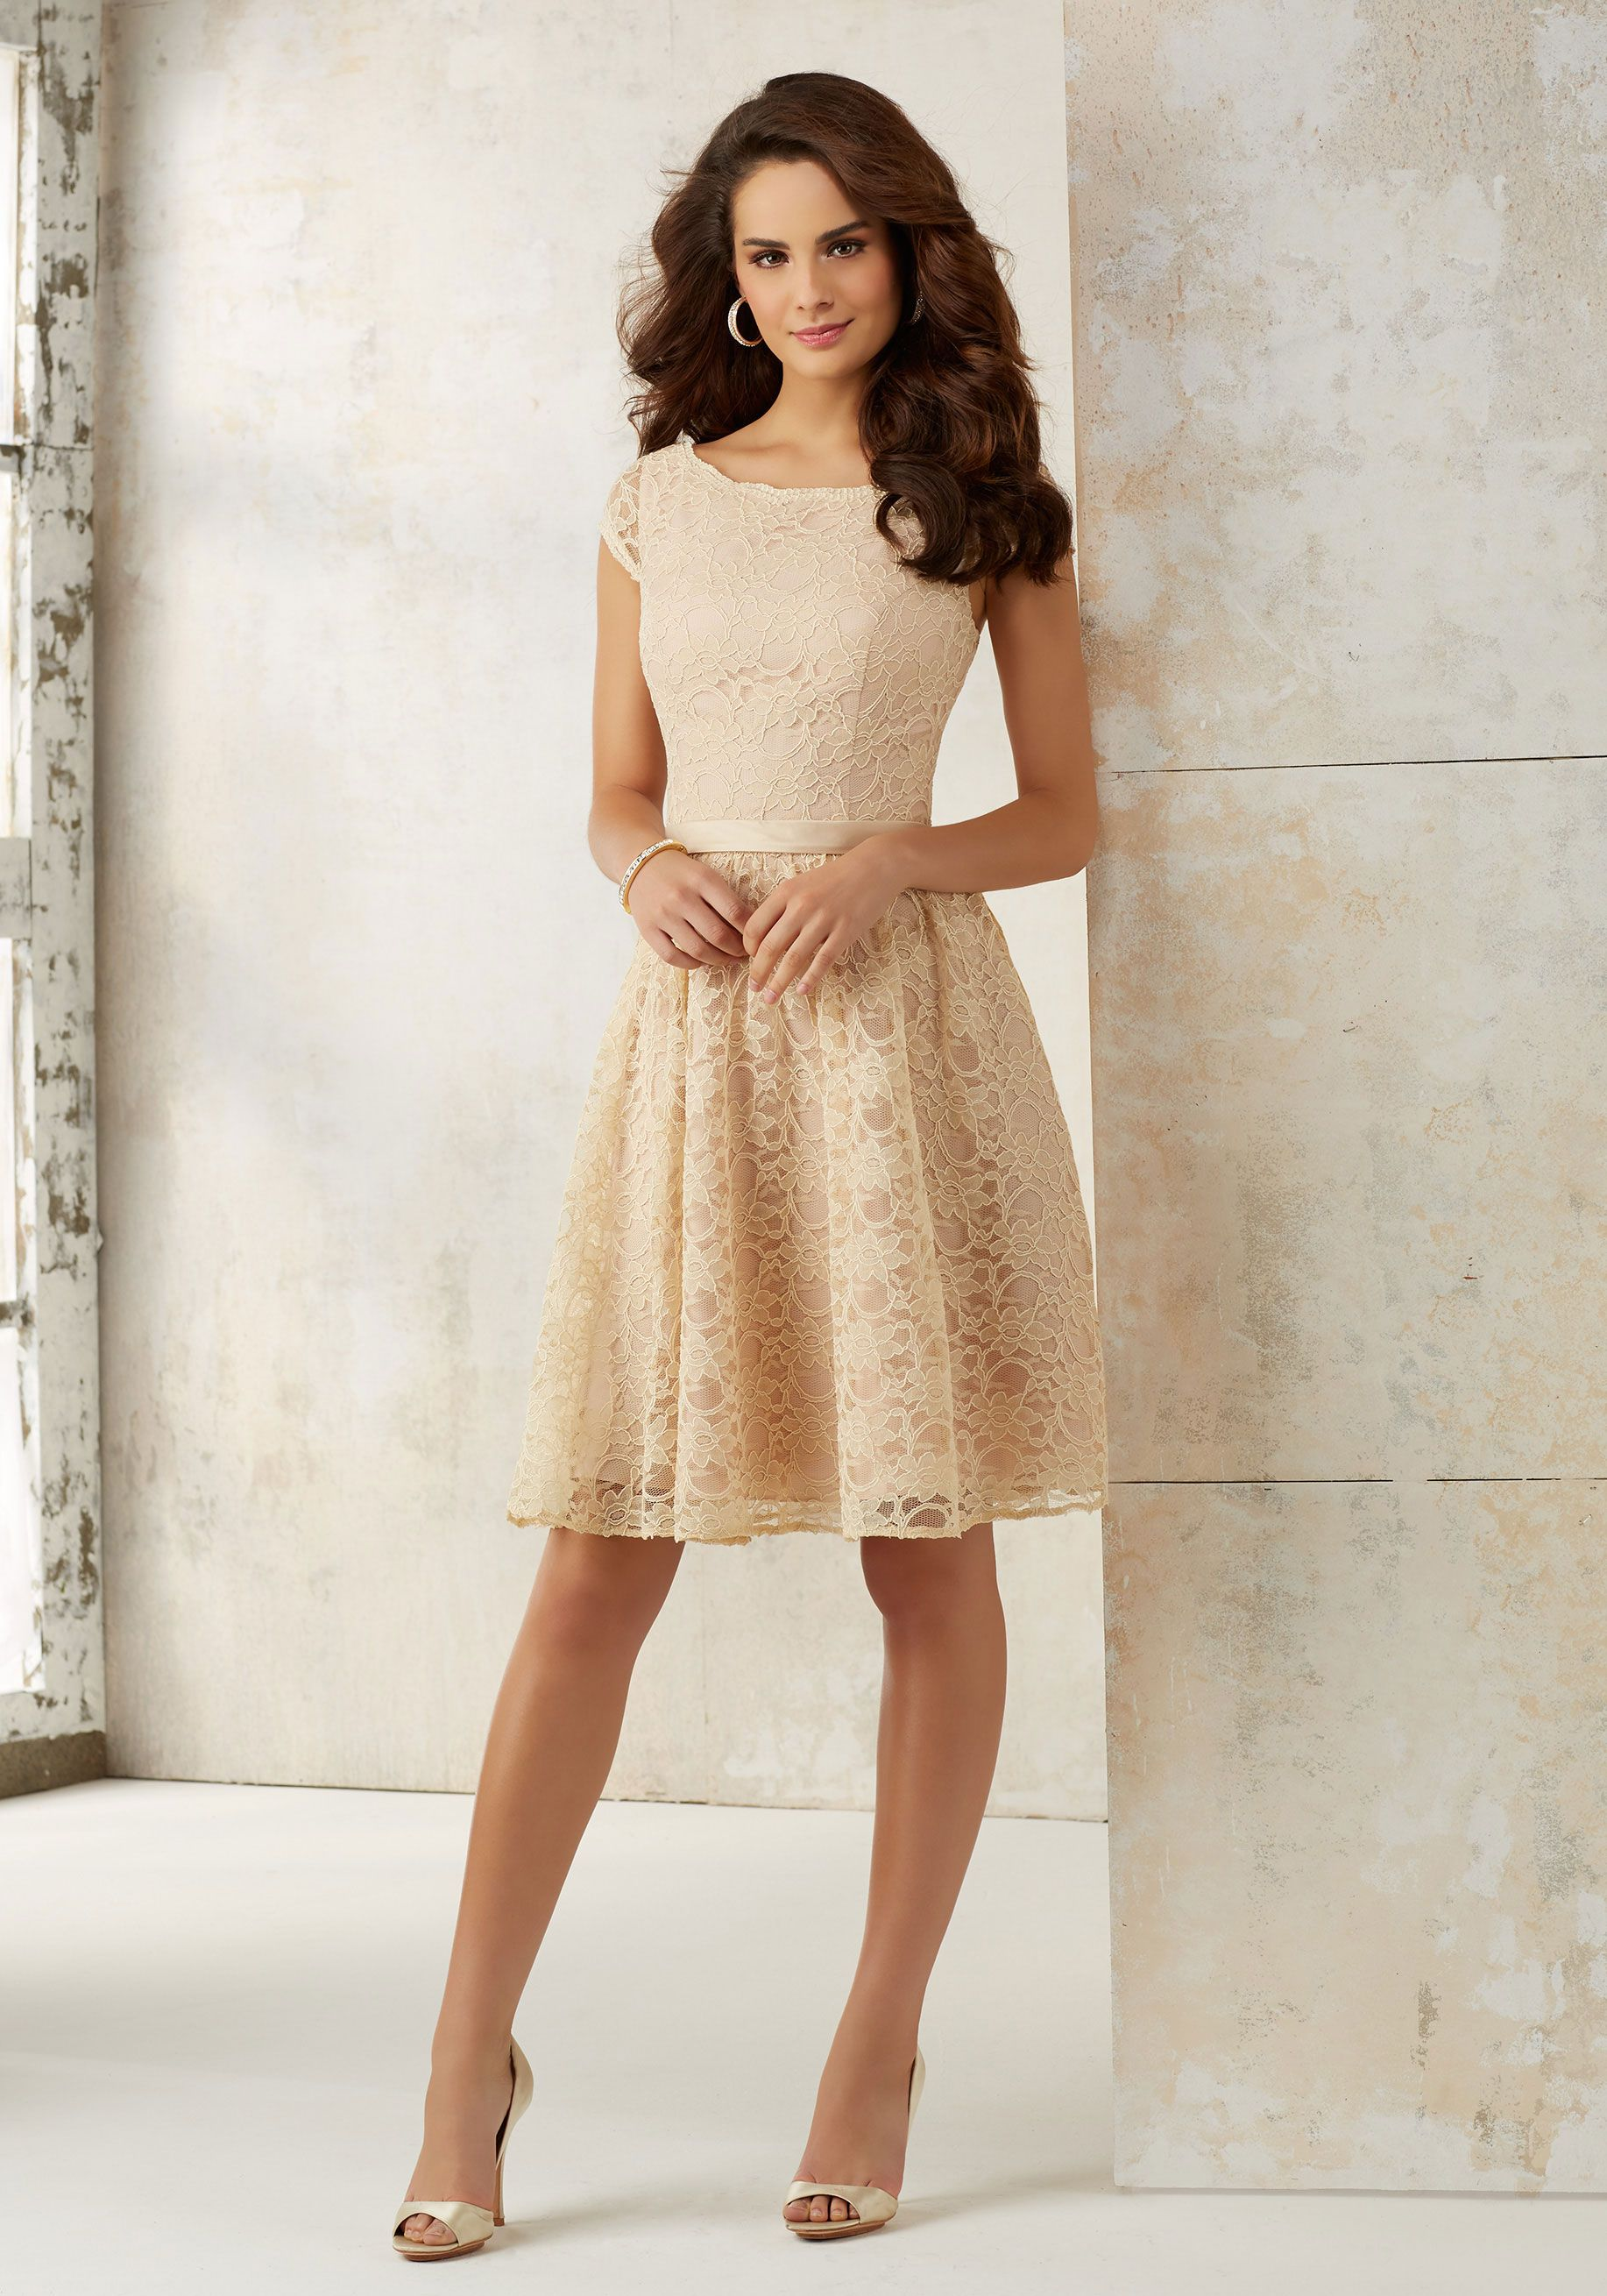 Morilee by madeline gardner bridesmaids style 21518 chic knee morilee by madeline gardner bridesmaids style 21518 chic knee length lace bridesmaids dress featuring a ombrellifo Gallery